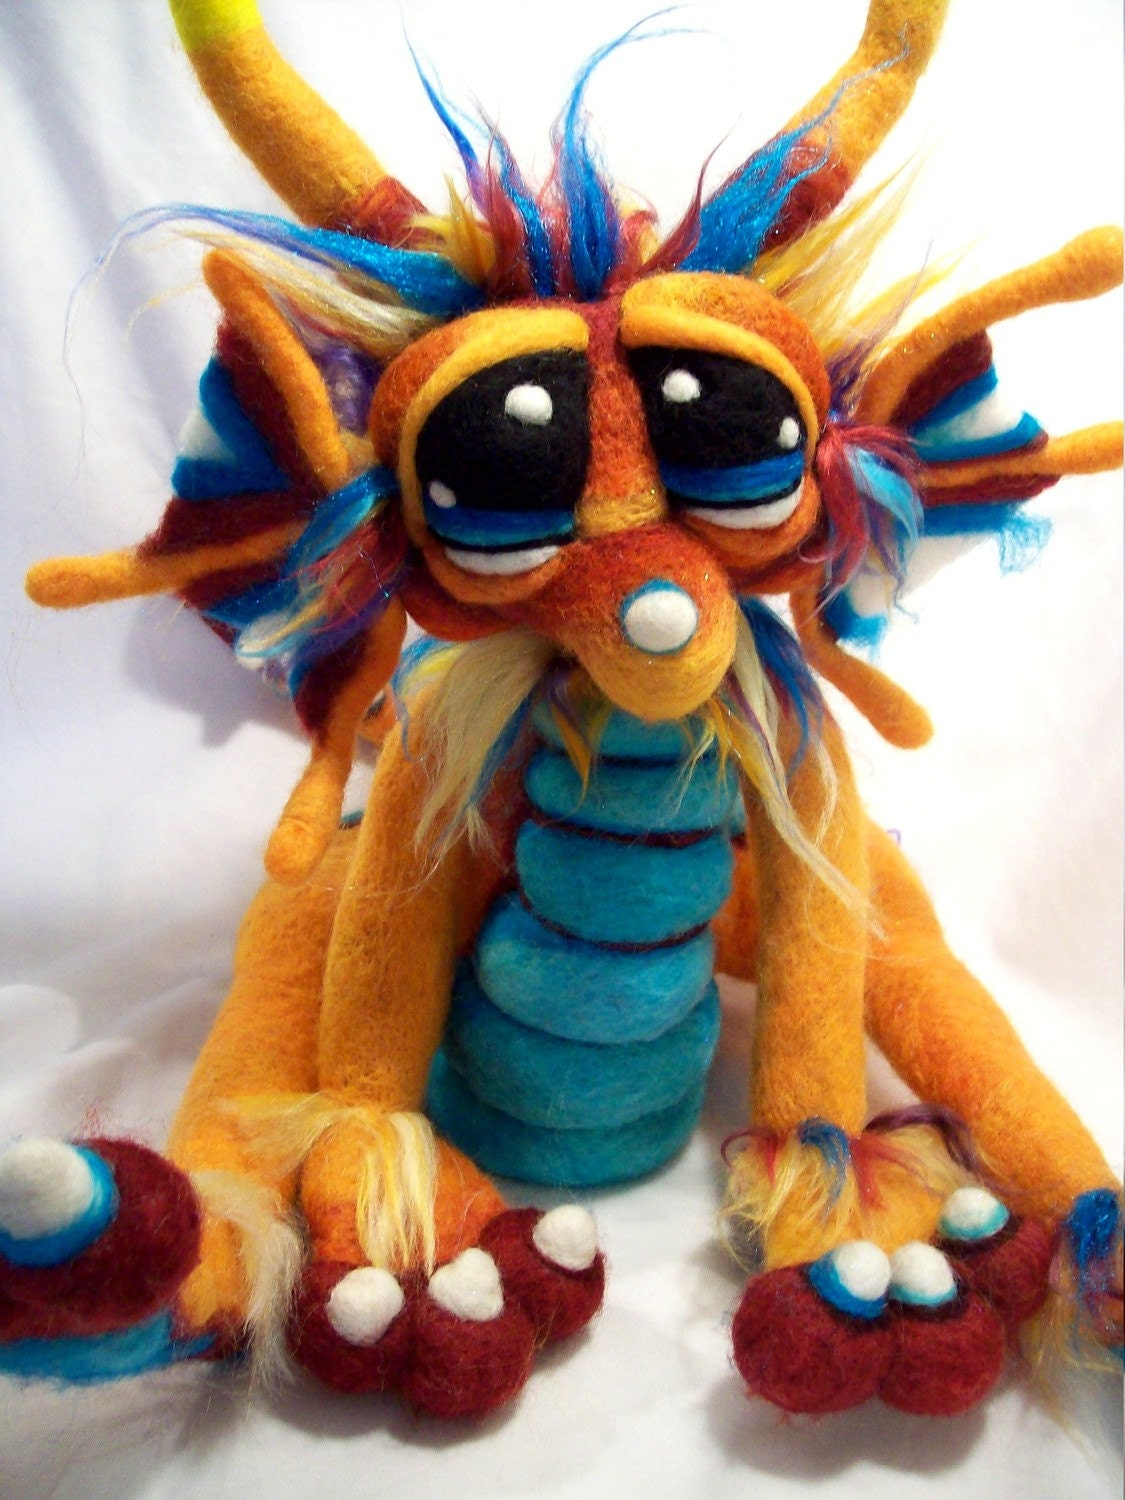 OOAK Custom Commissioned Copper Moon Dragon Needle Felt Soft Sculpture Wool Art doll Plush for Jessfox